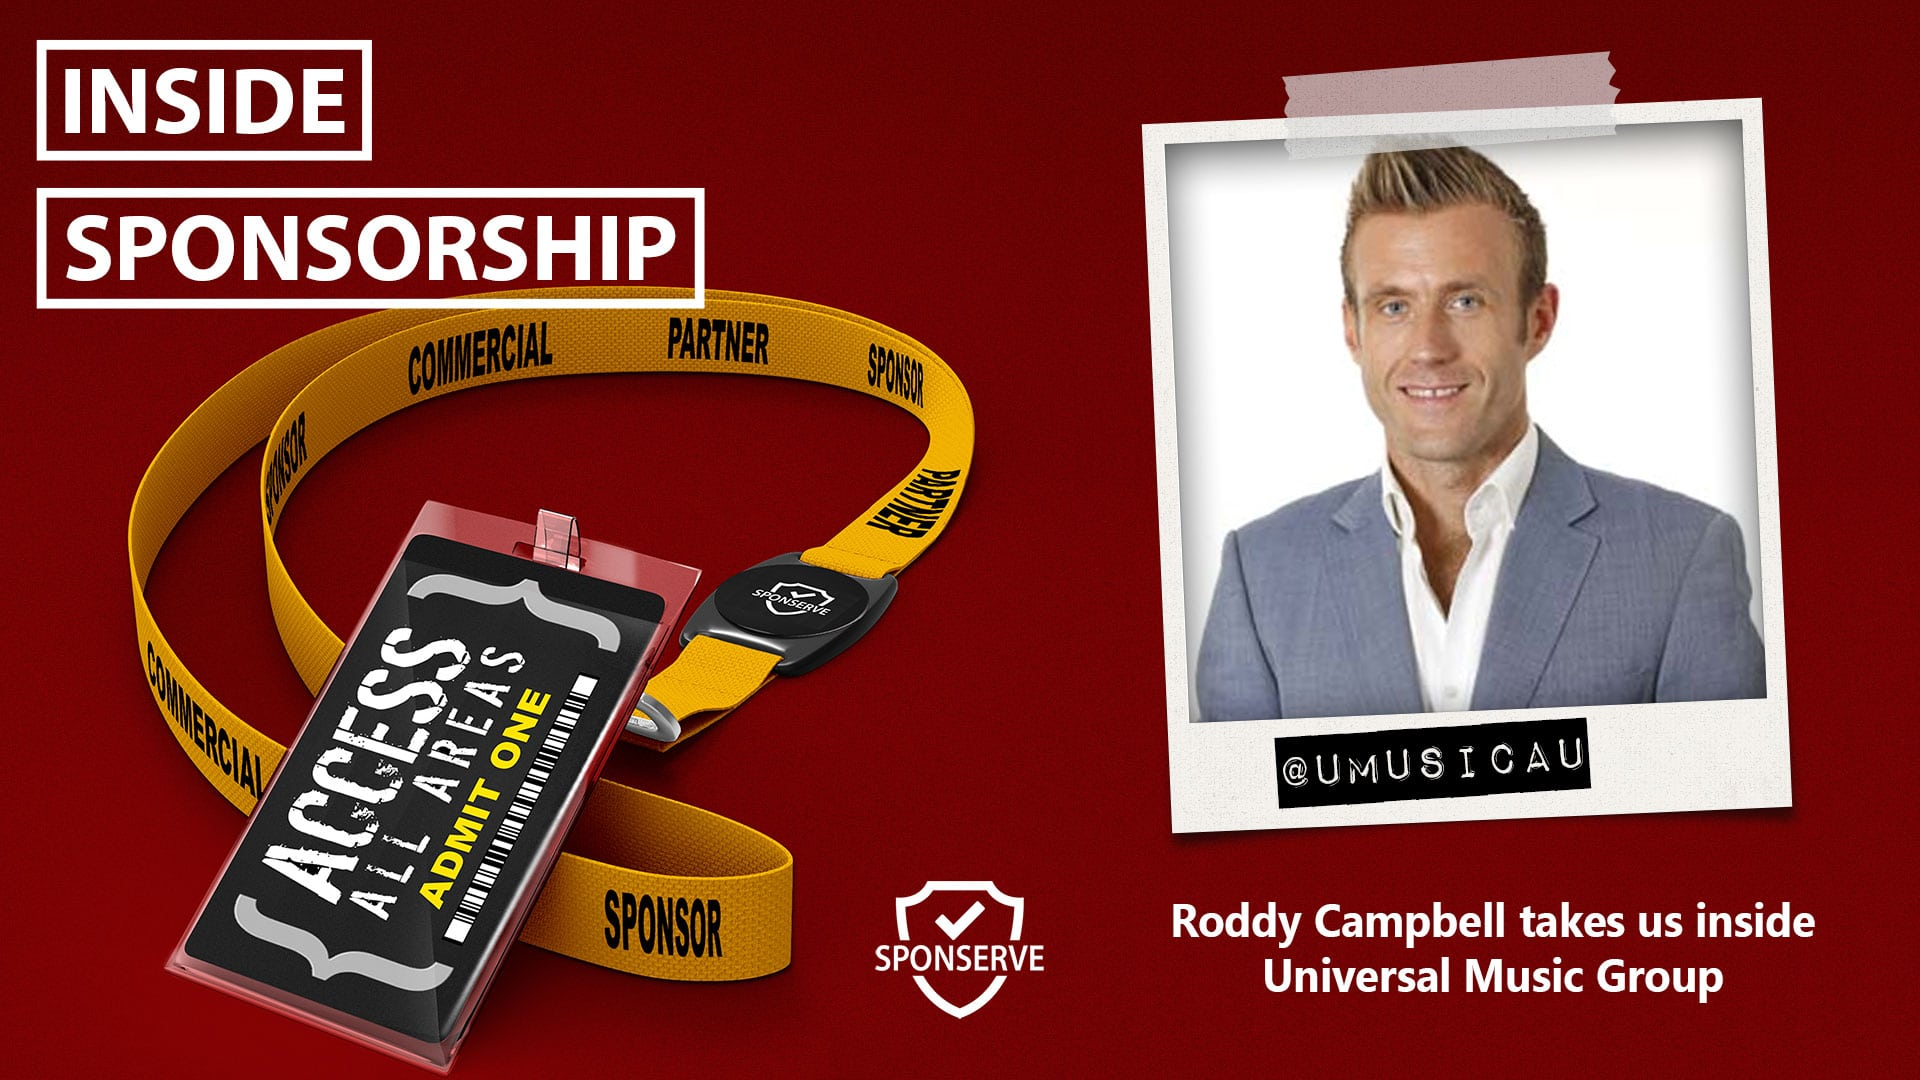 Inside-Sponsorship-Universal-Music-Group-Roddy-Campbell